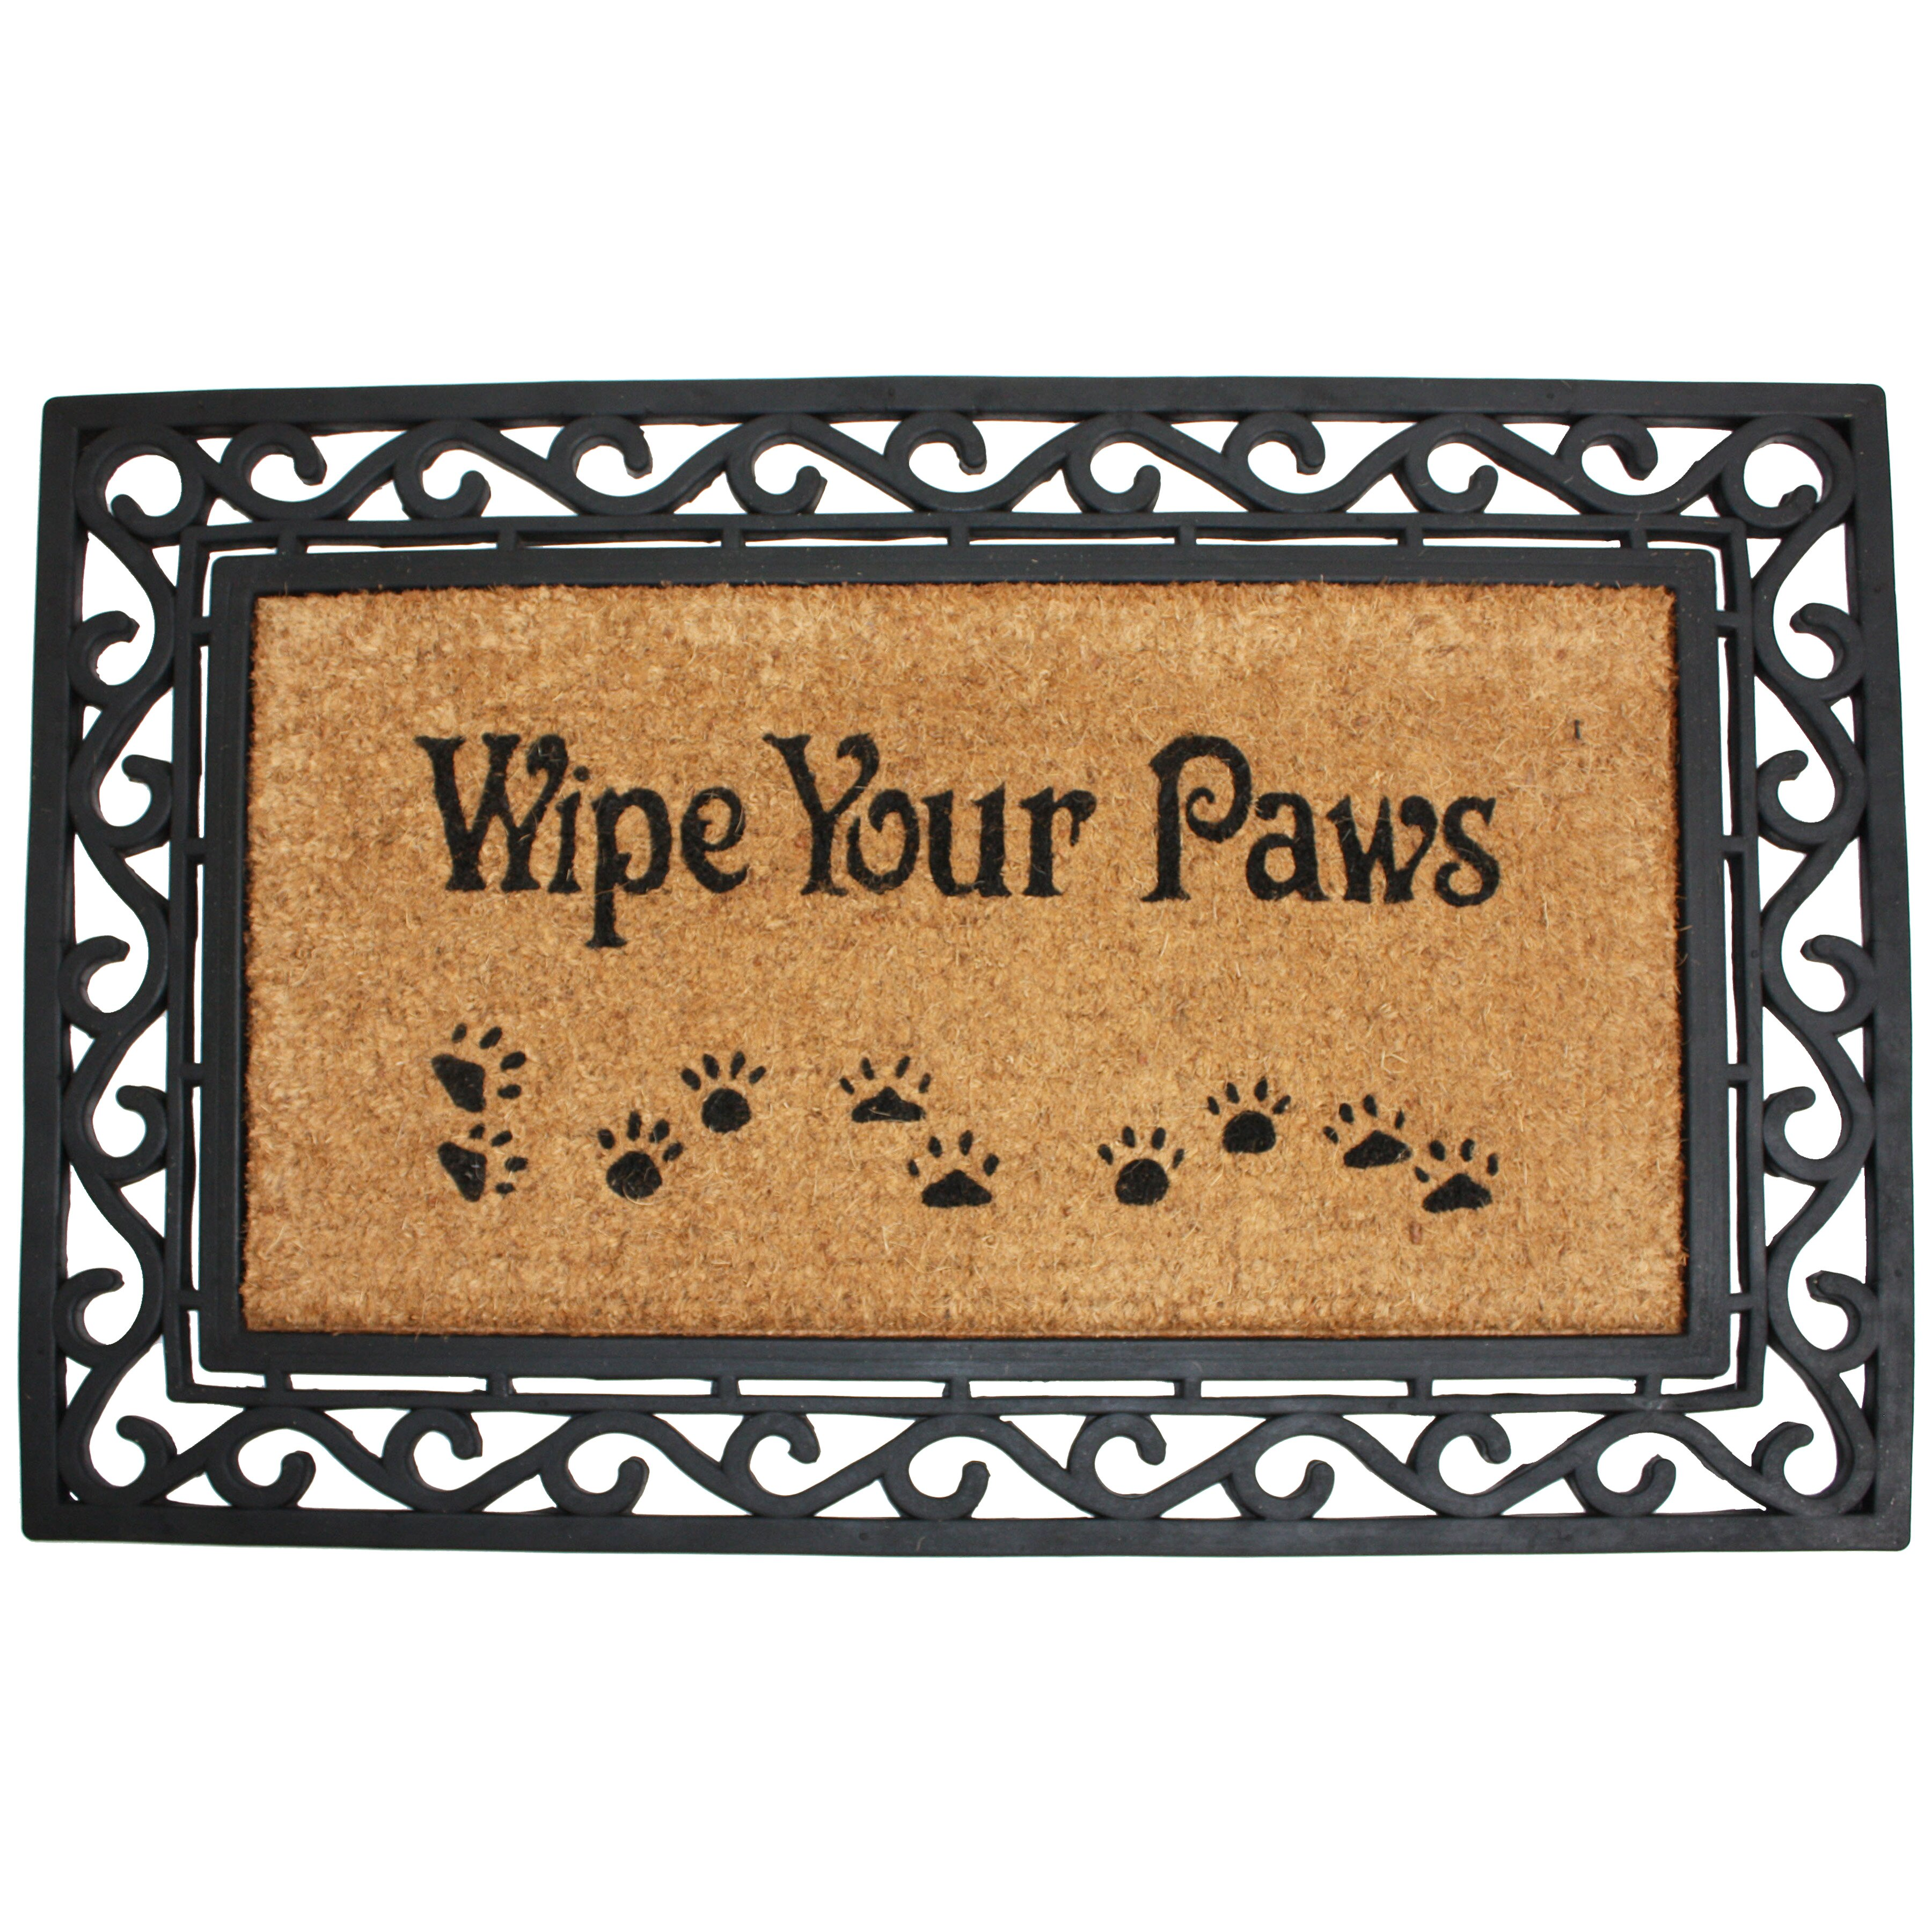 J Amp M Home Fashions Wipe Your Paws Doormat Amp Reviews Wayfair